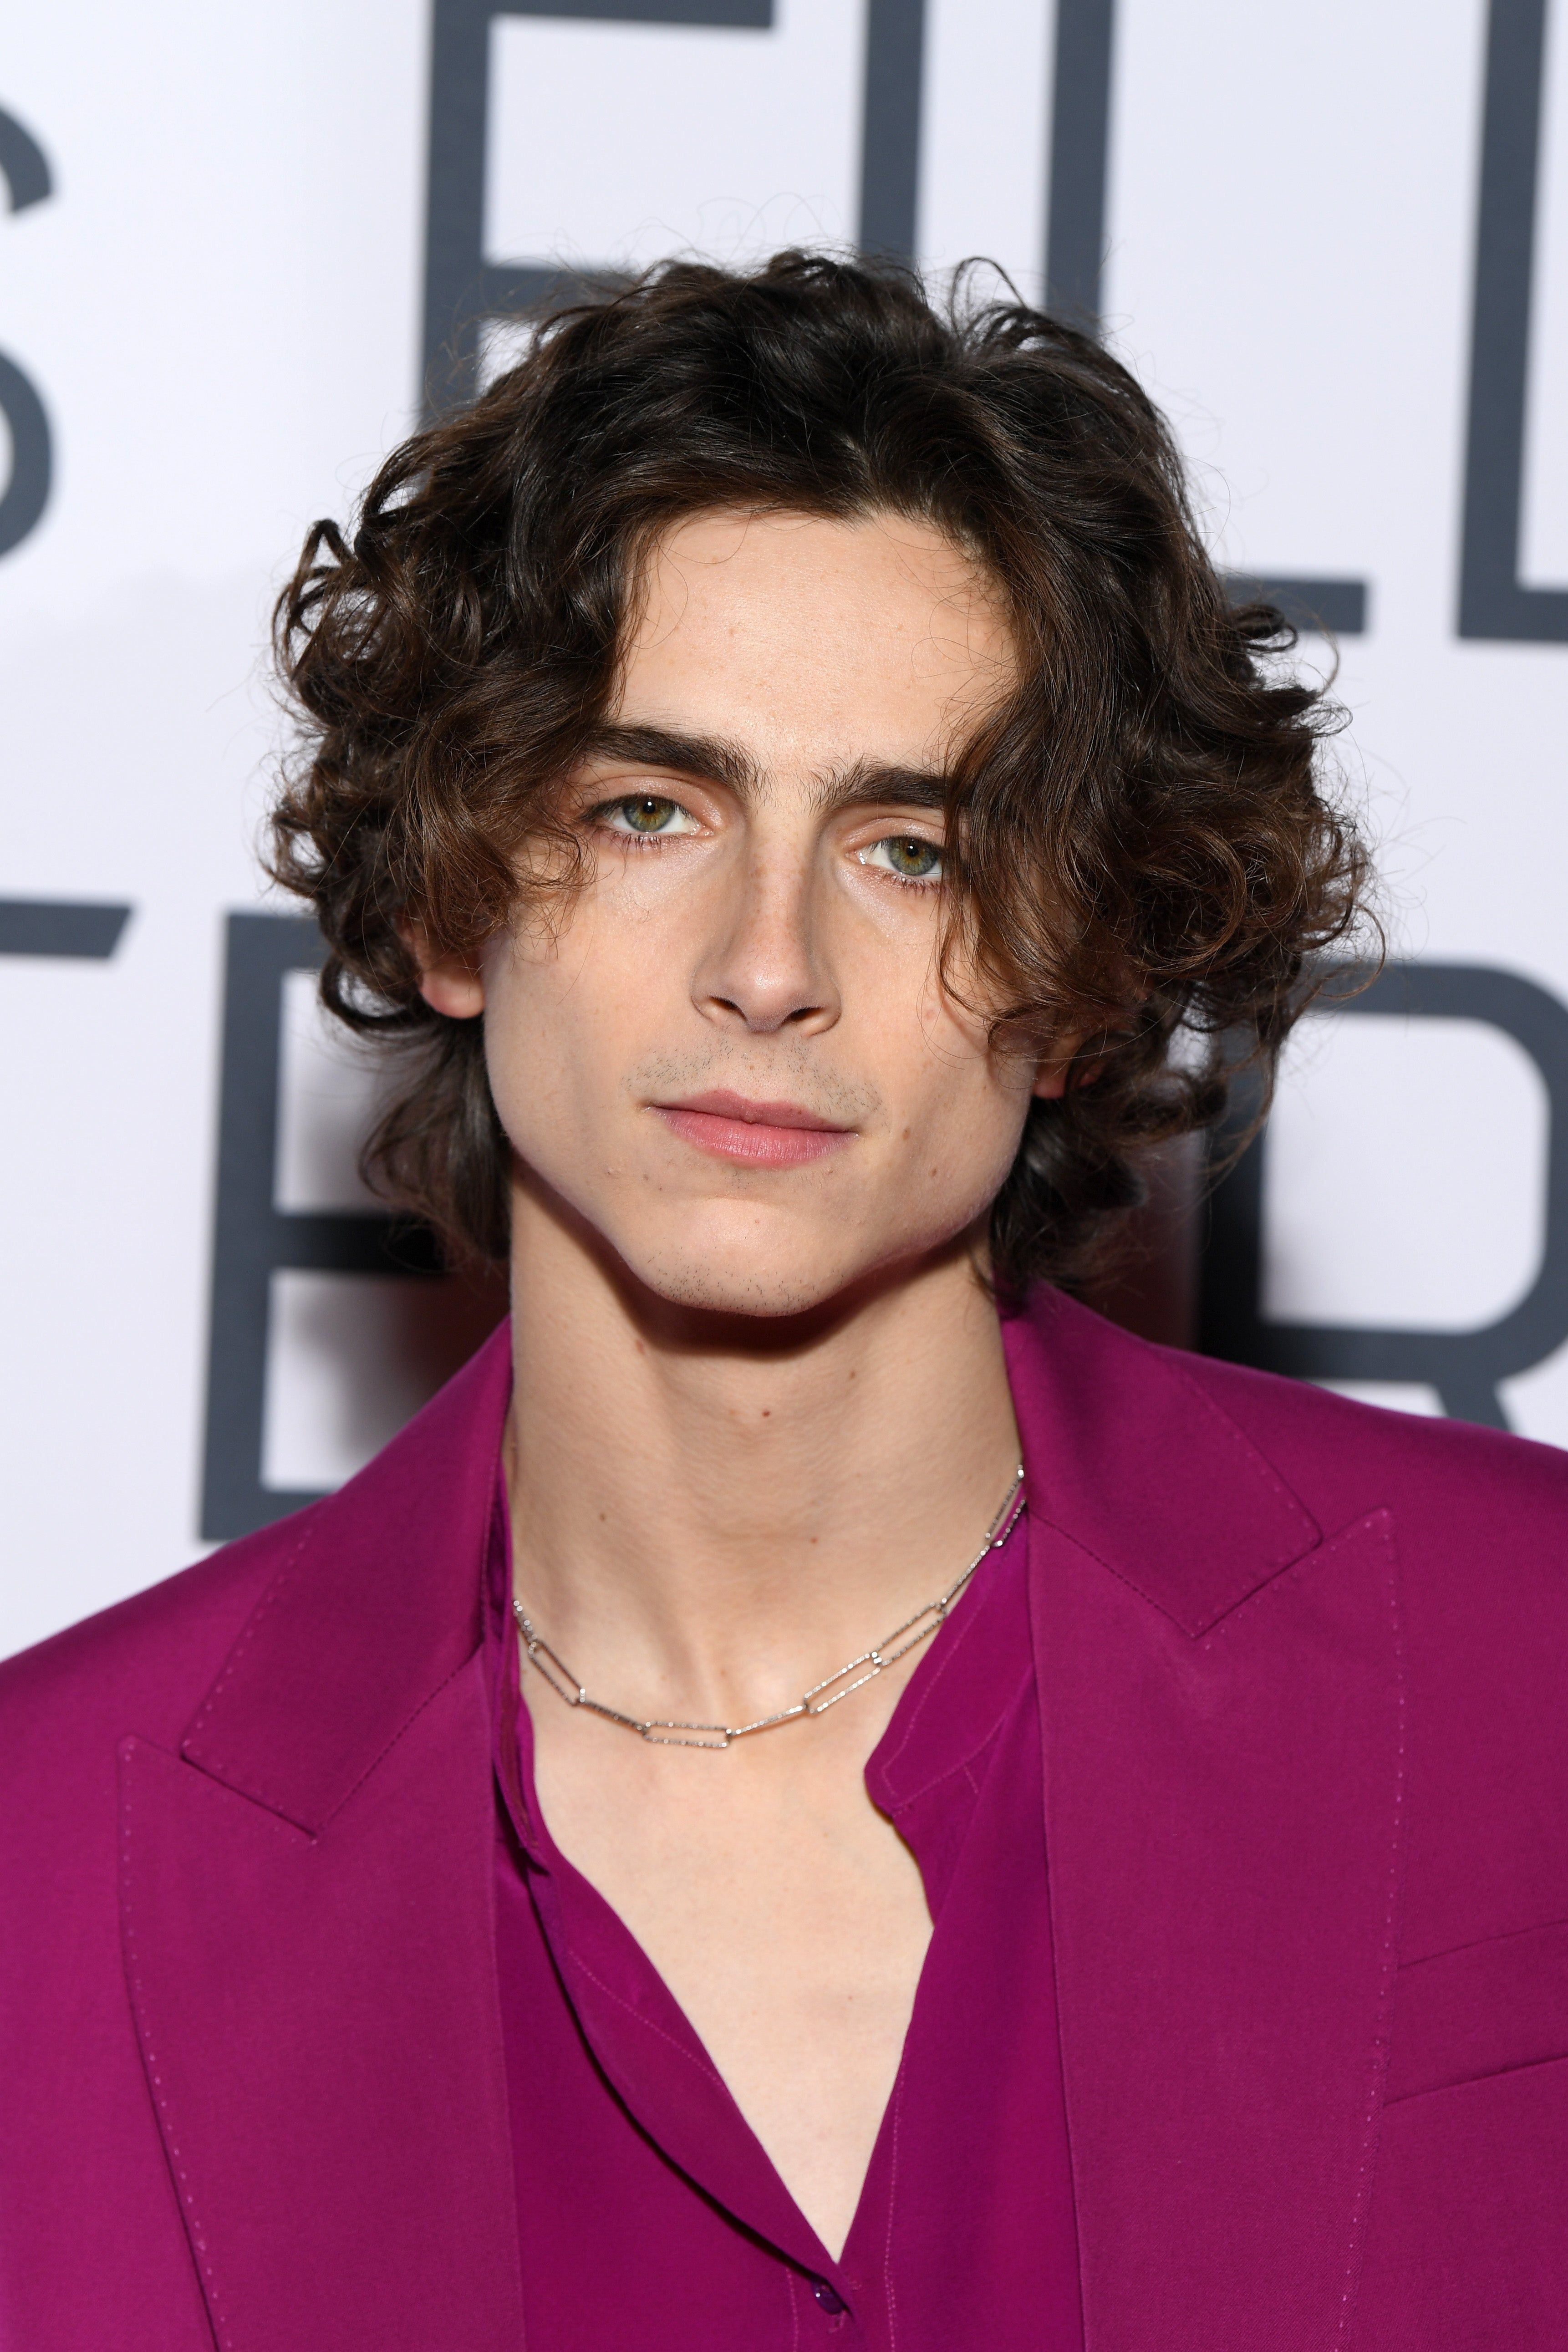 Timothee Chalamet Is In Talks To Play Bob Dylan It Couldn T Be More Perfect In 2020 Timothee Chalamet Pretty People Celebrities